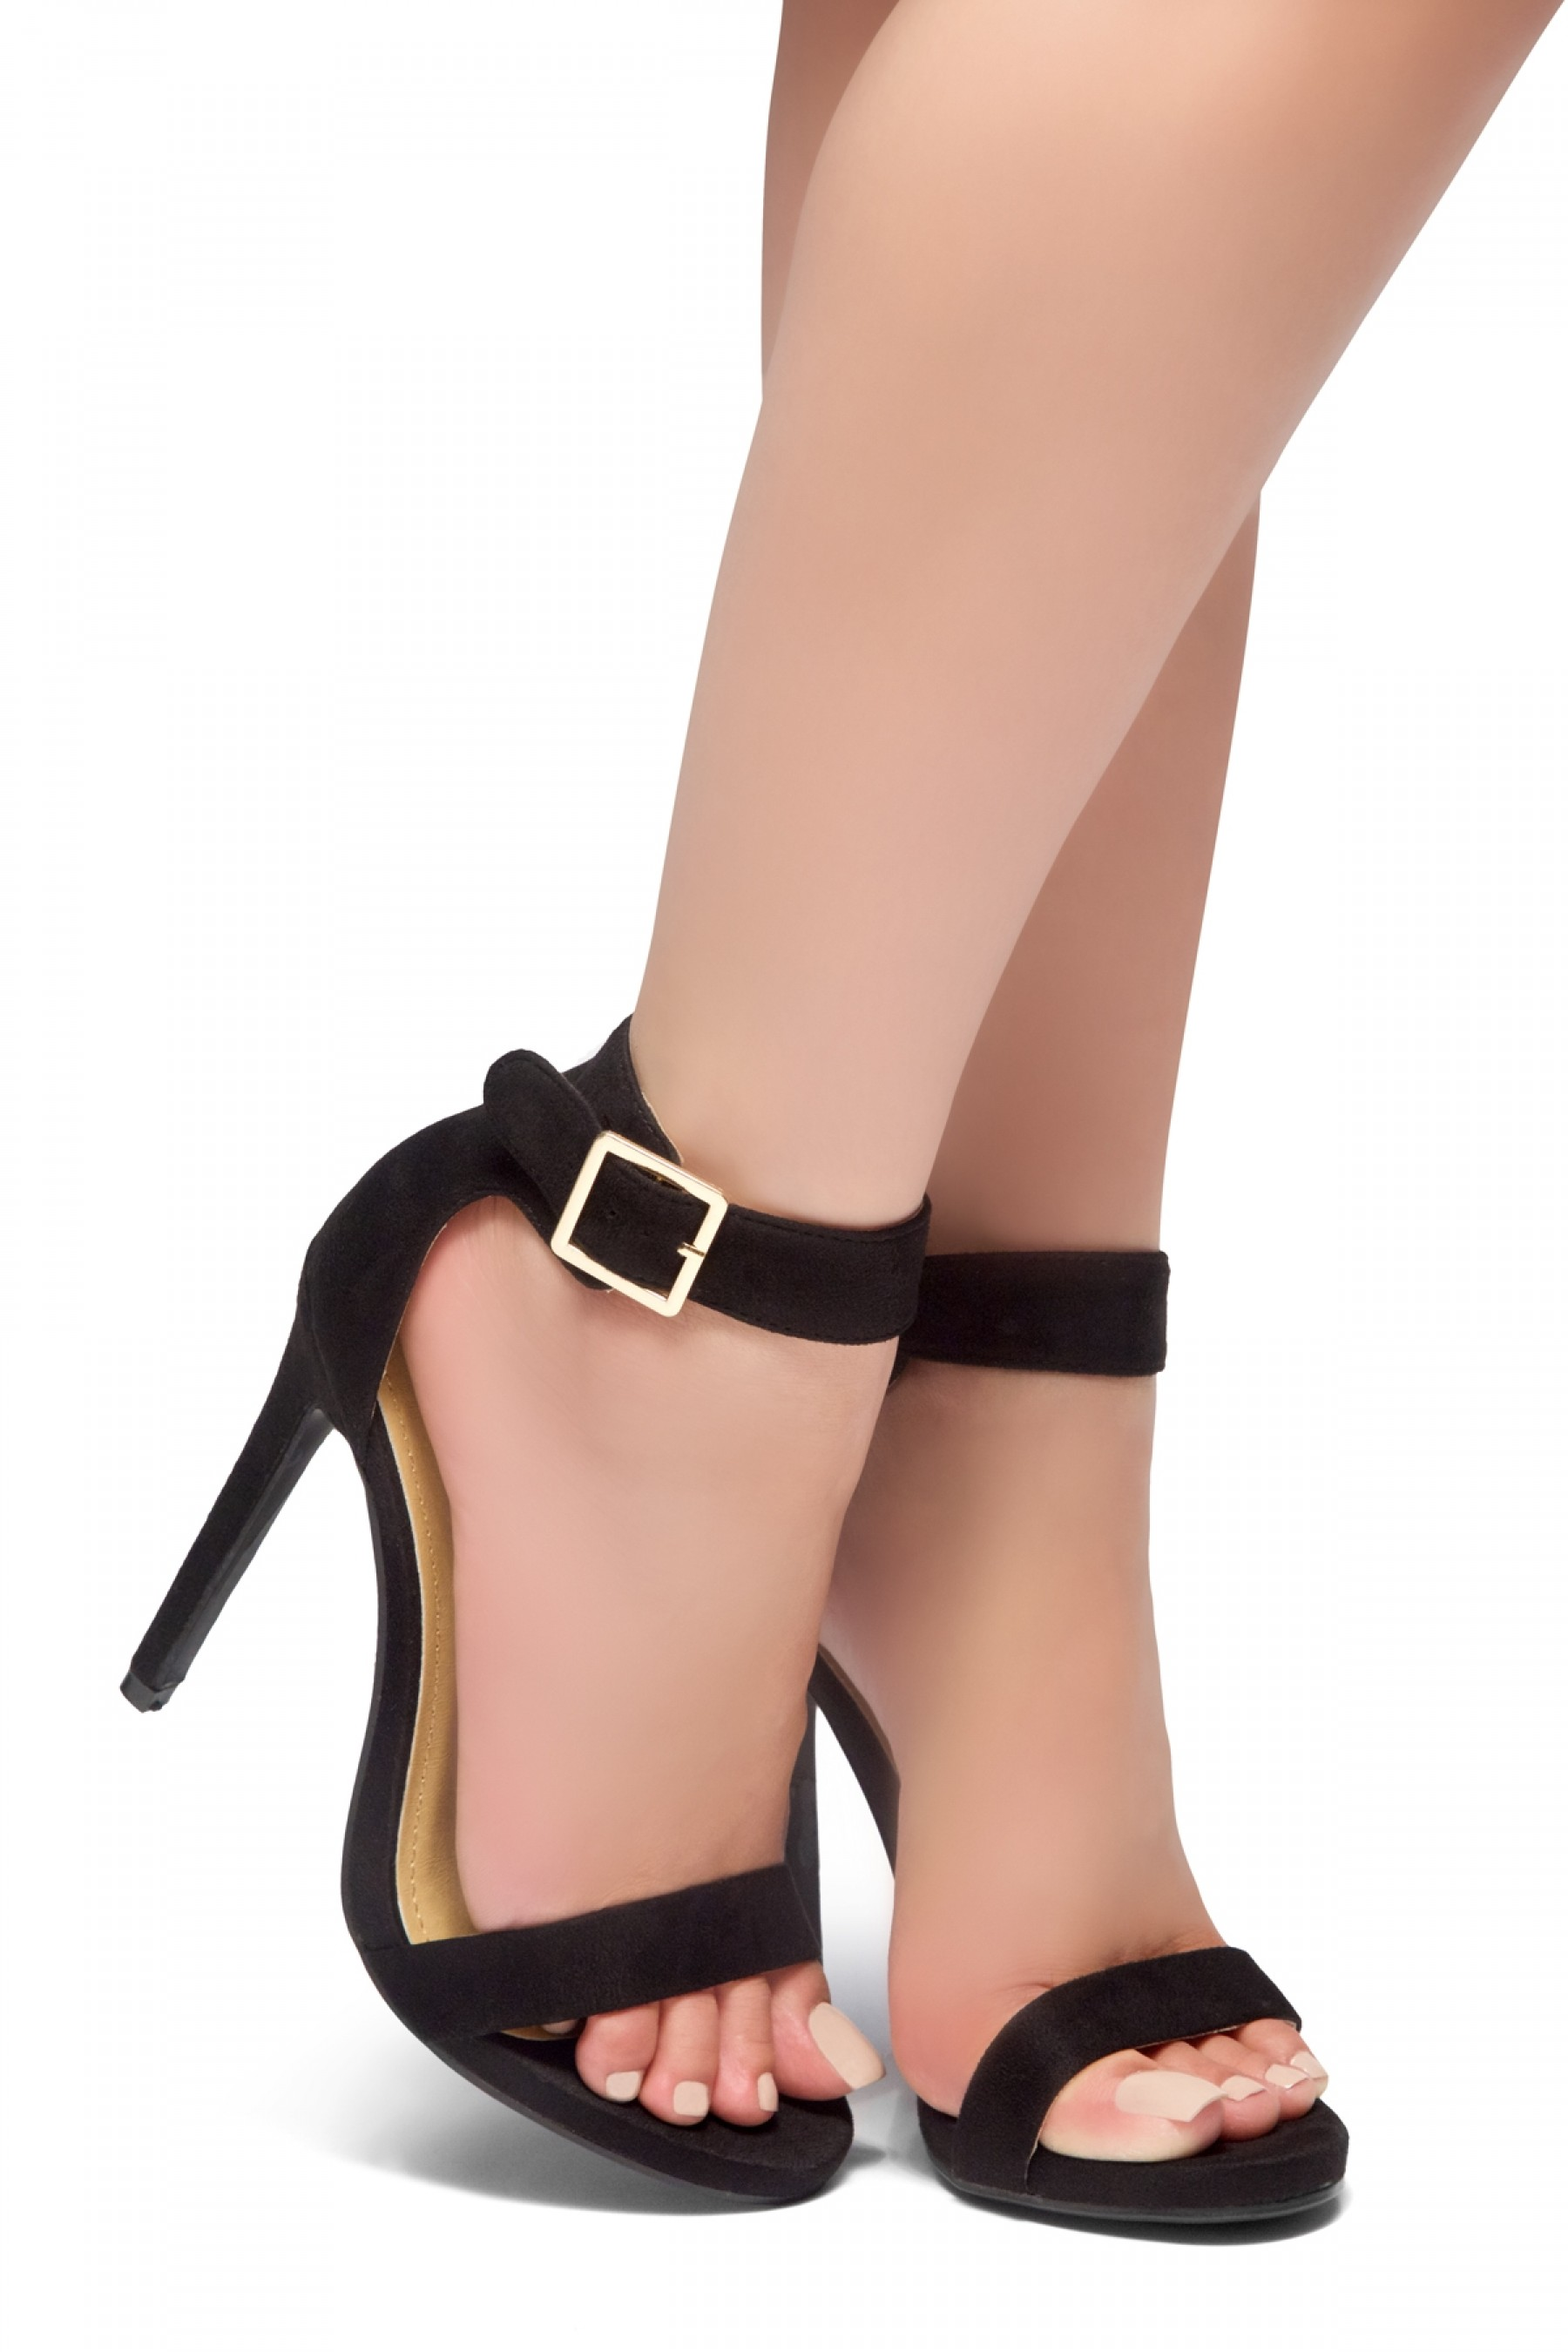 HerStyle ZOANNA-TWICE FUN-Stiletto heel, Strap around the toe Heels (Black)